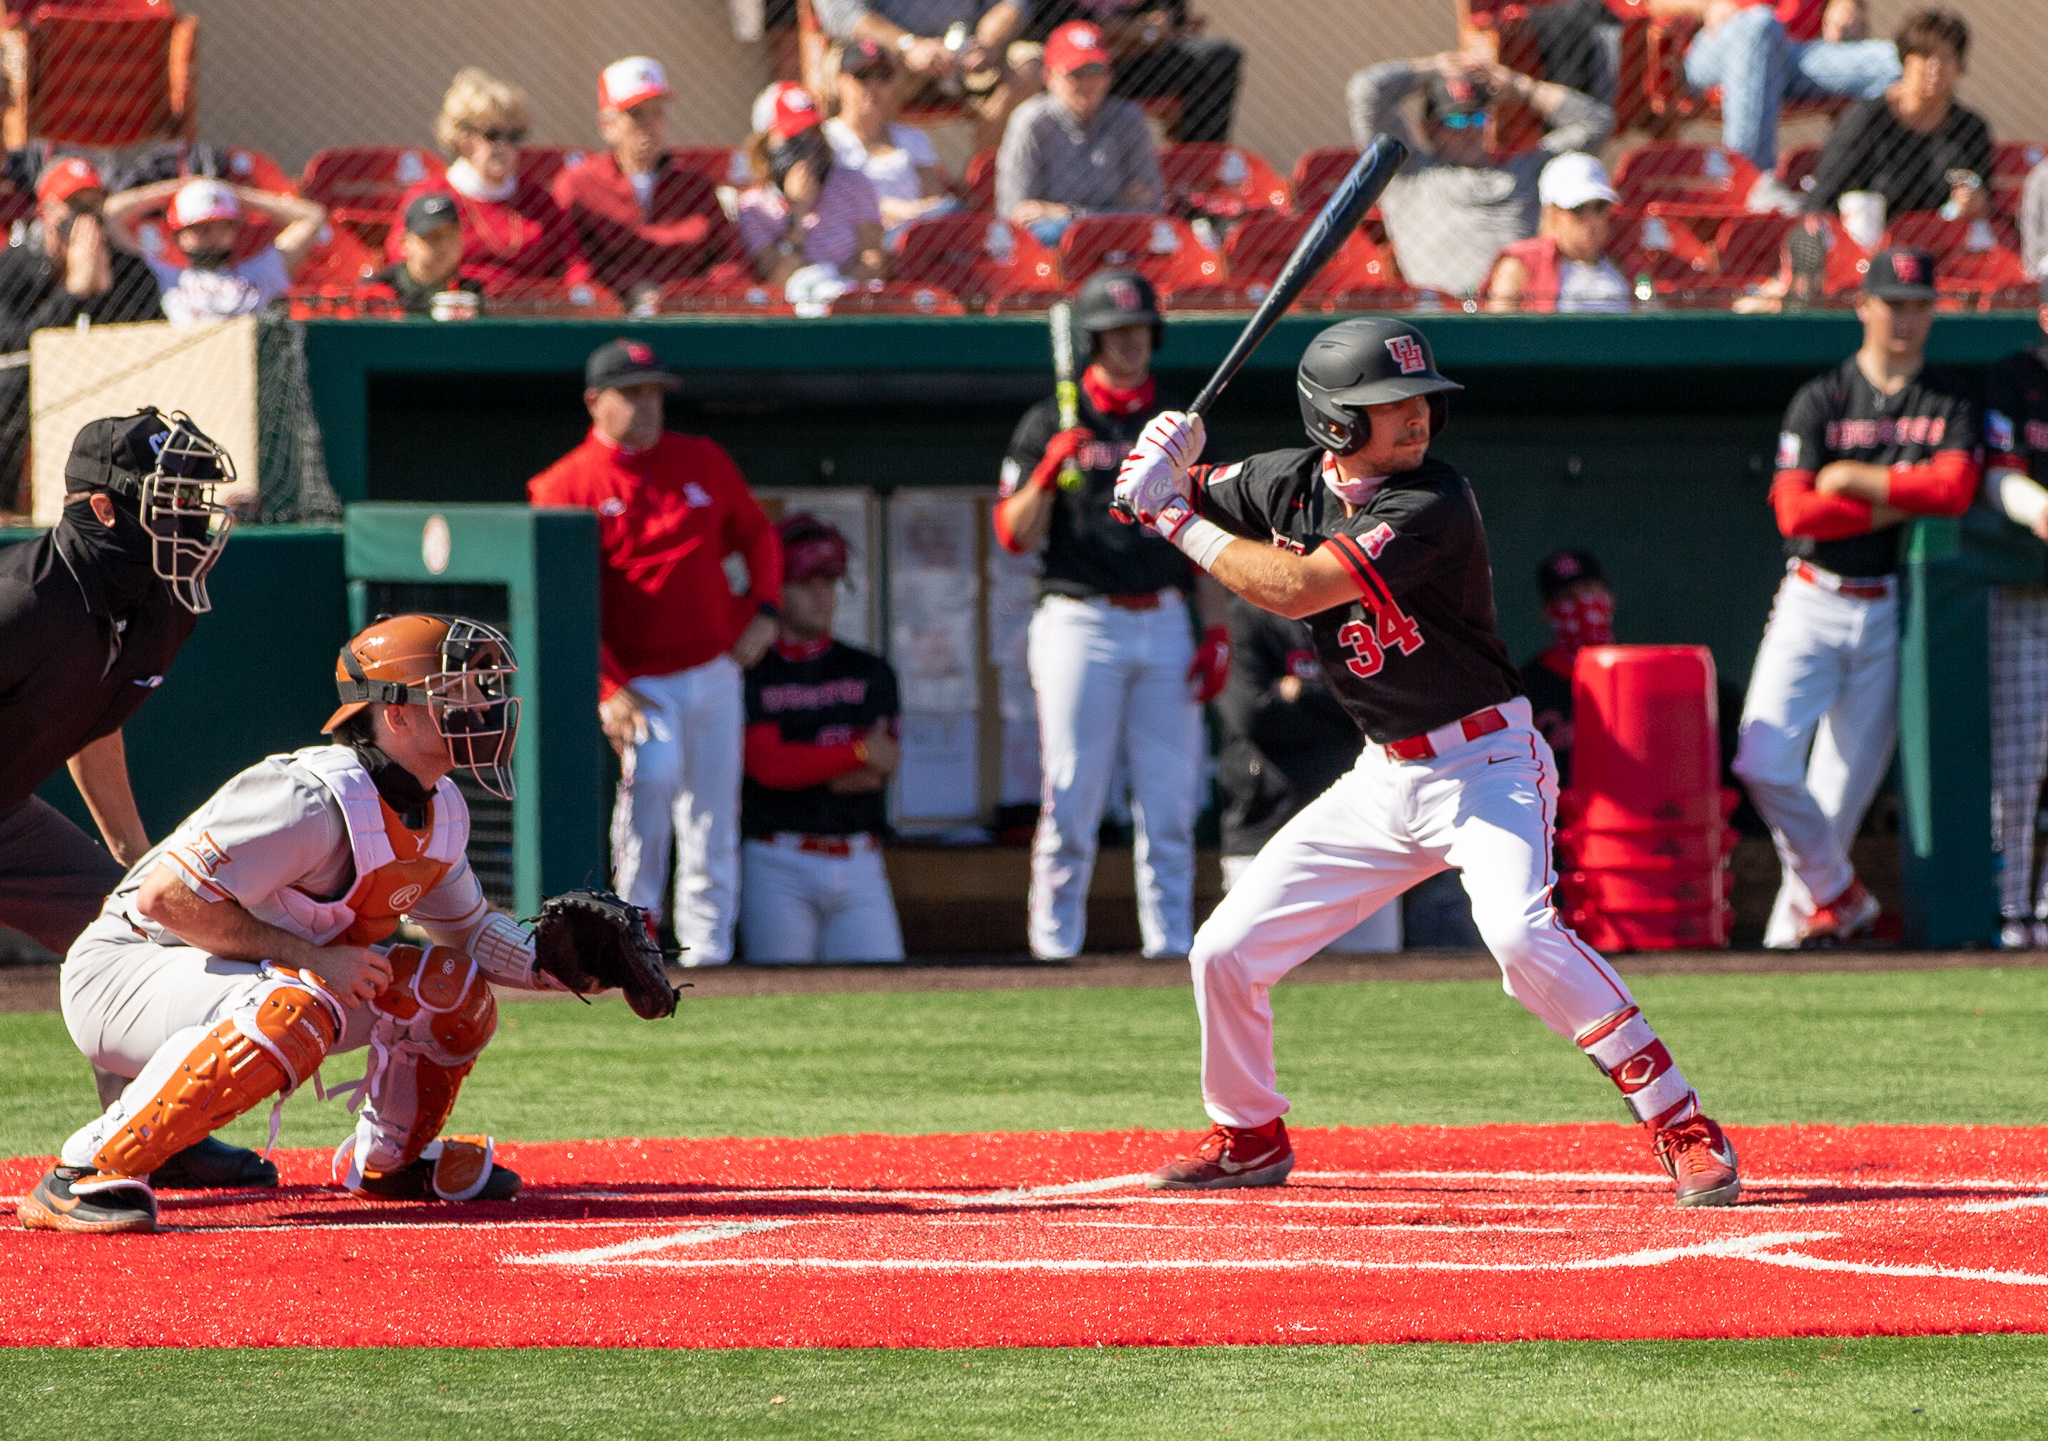 Junior catcher Kyle Lovelace launched his first home run in his UH baseball career Wednesday night against Wichita State. | Andy Yanez/The Cougar